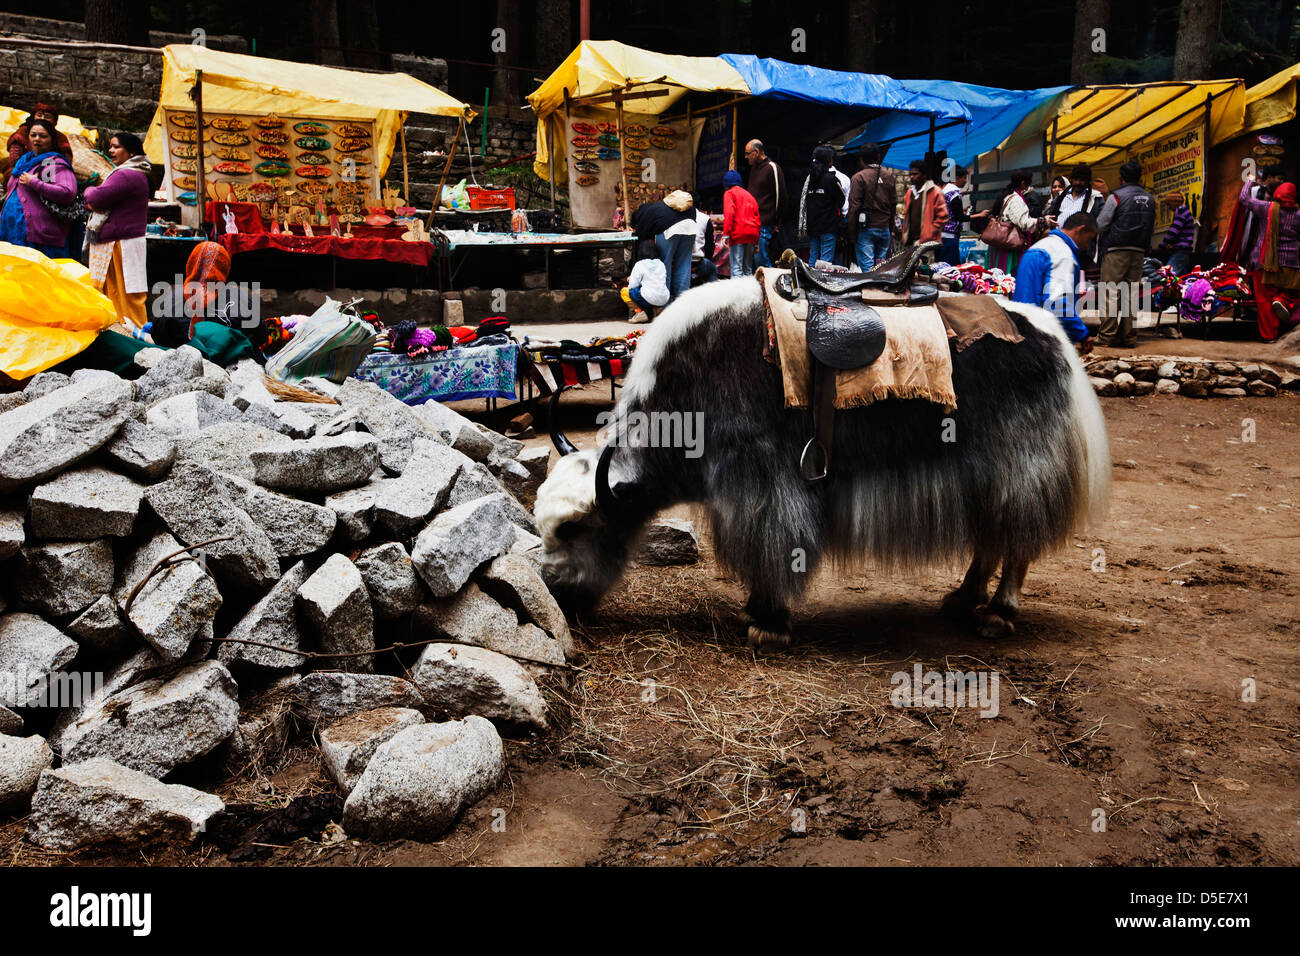 Yak grazing with tourists shopping in the street market, Manali, Himachal Pradesh, India - Stock Image